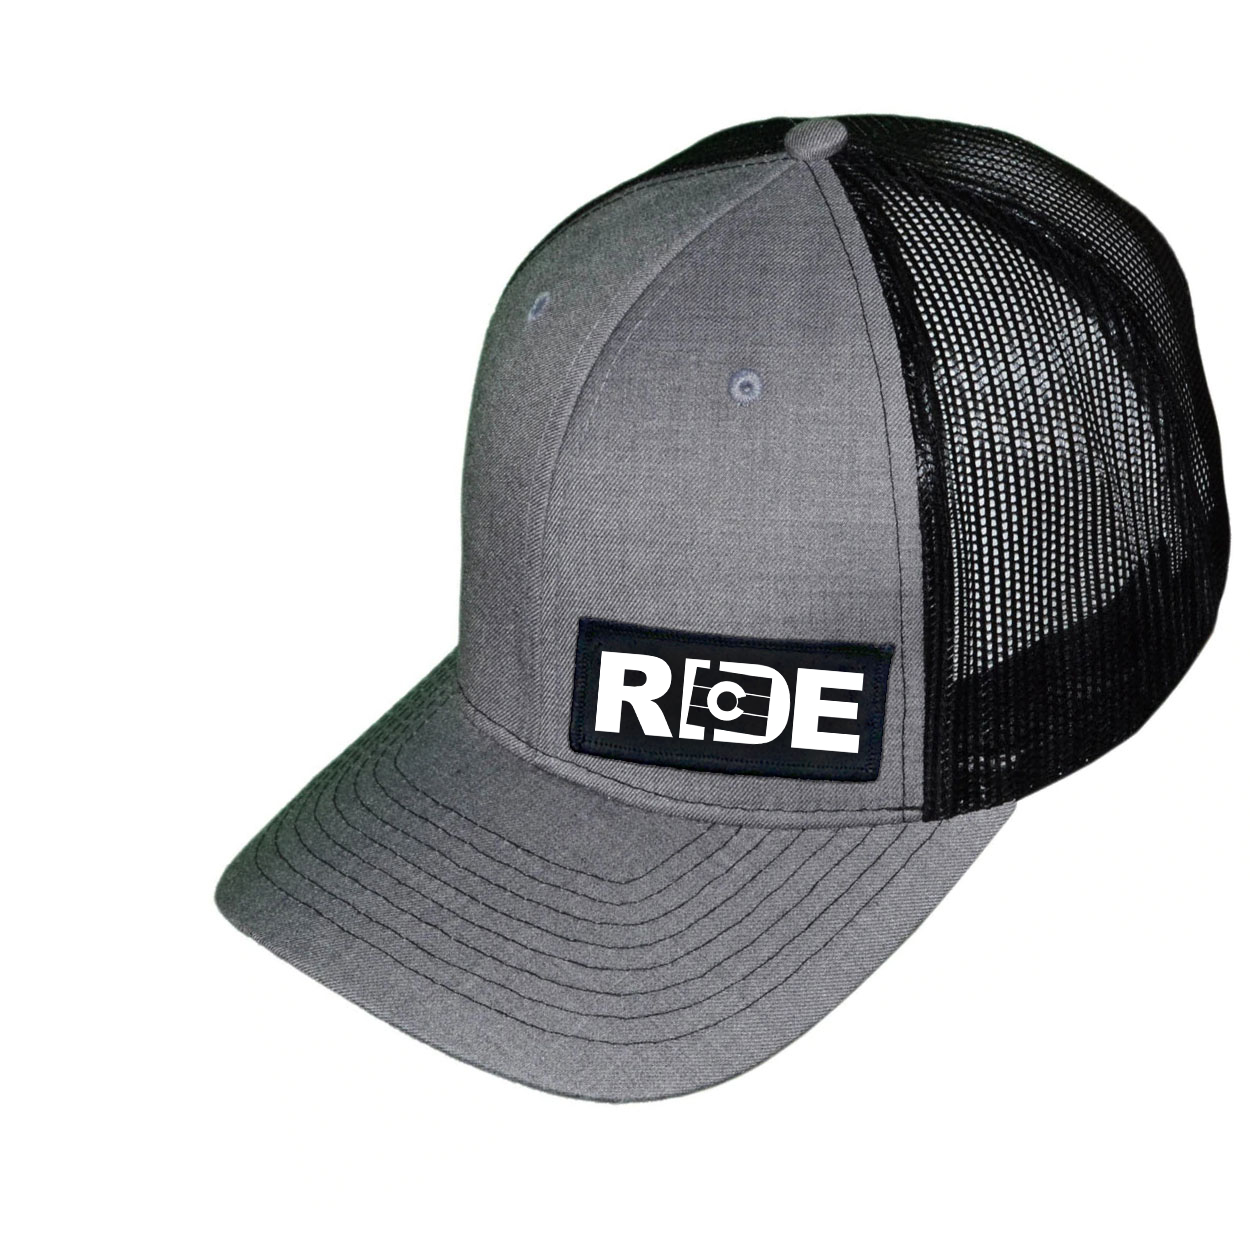 Ride Colorado Night Out Woven Patch Snapback Trucker Hat Heather Gray/Black (White Logo)